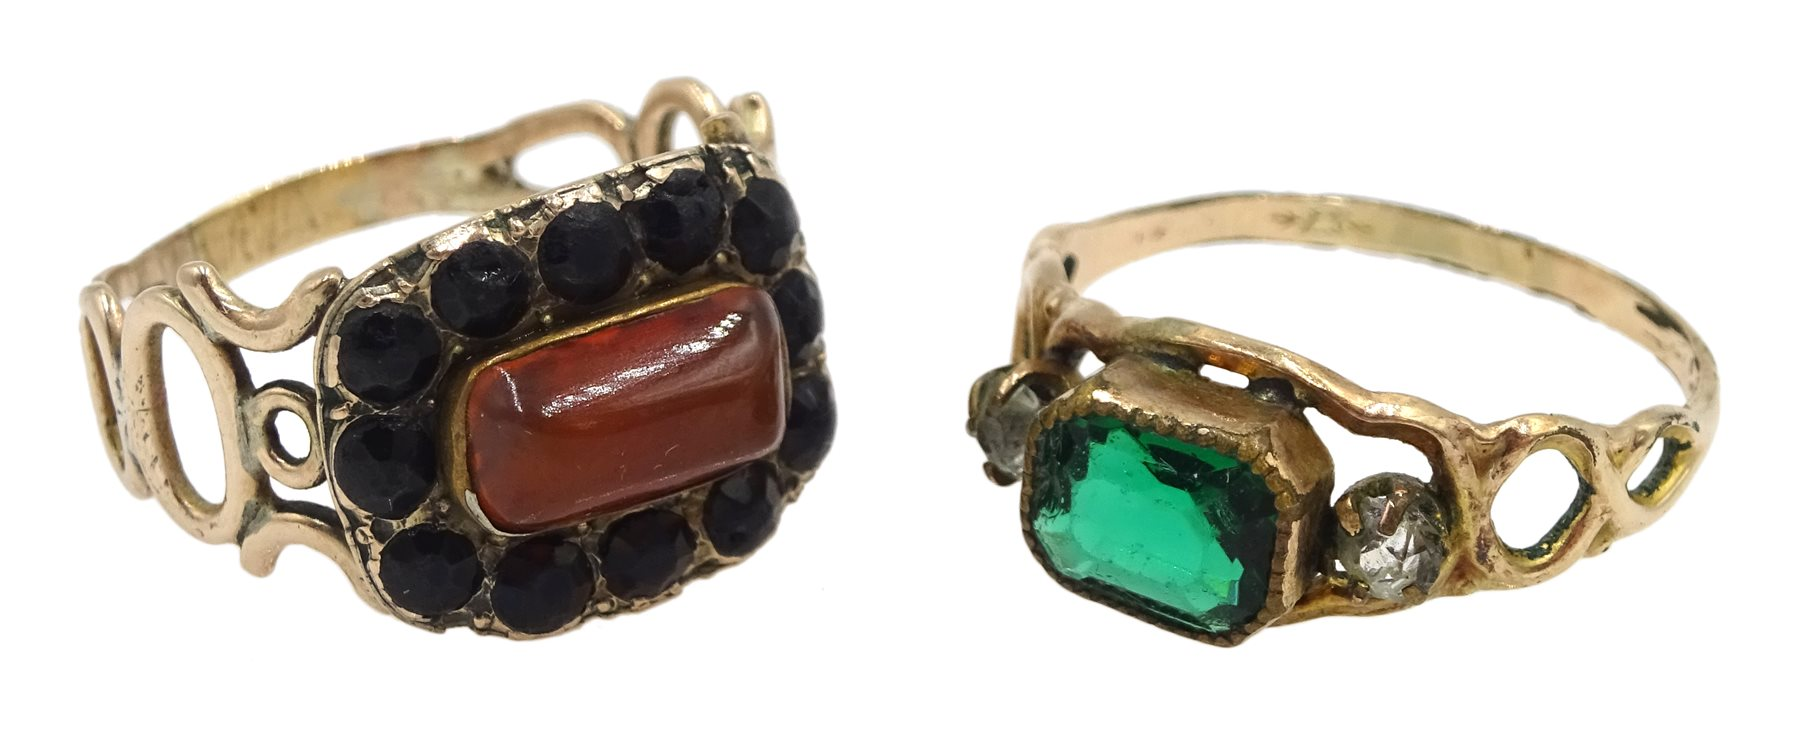 Georgian gold carnelian ring, with Vauxhall glass bead surround and a similar green and clear paste